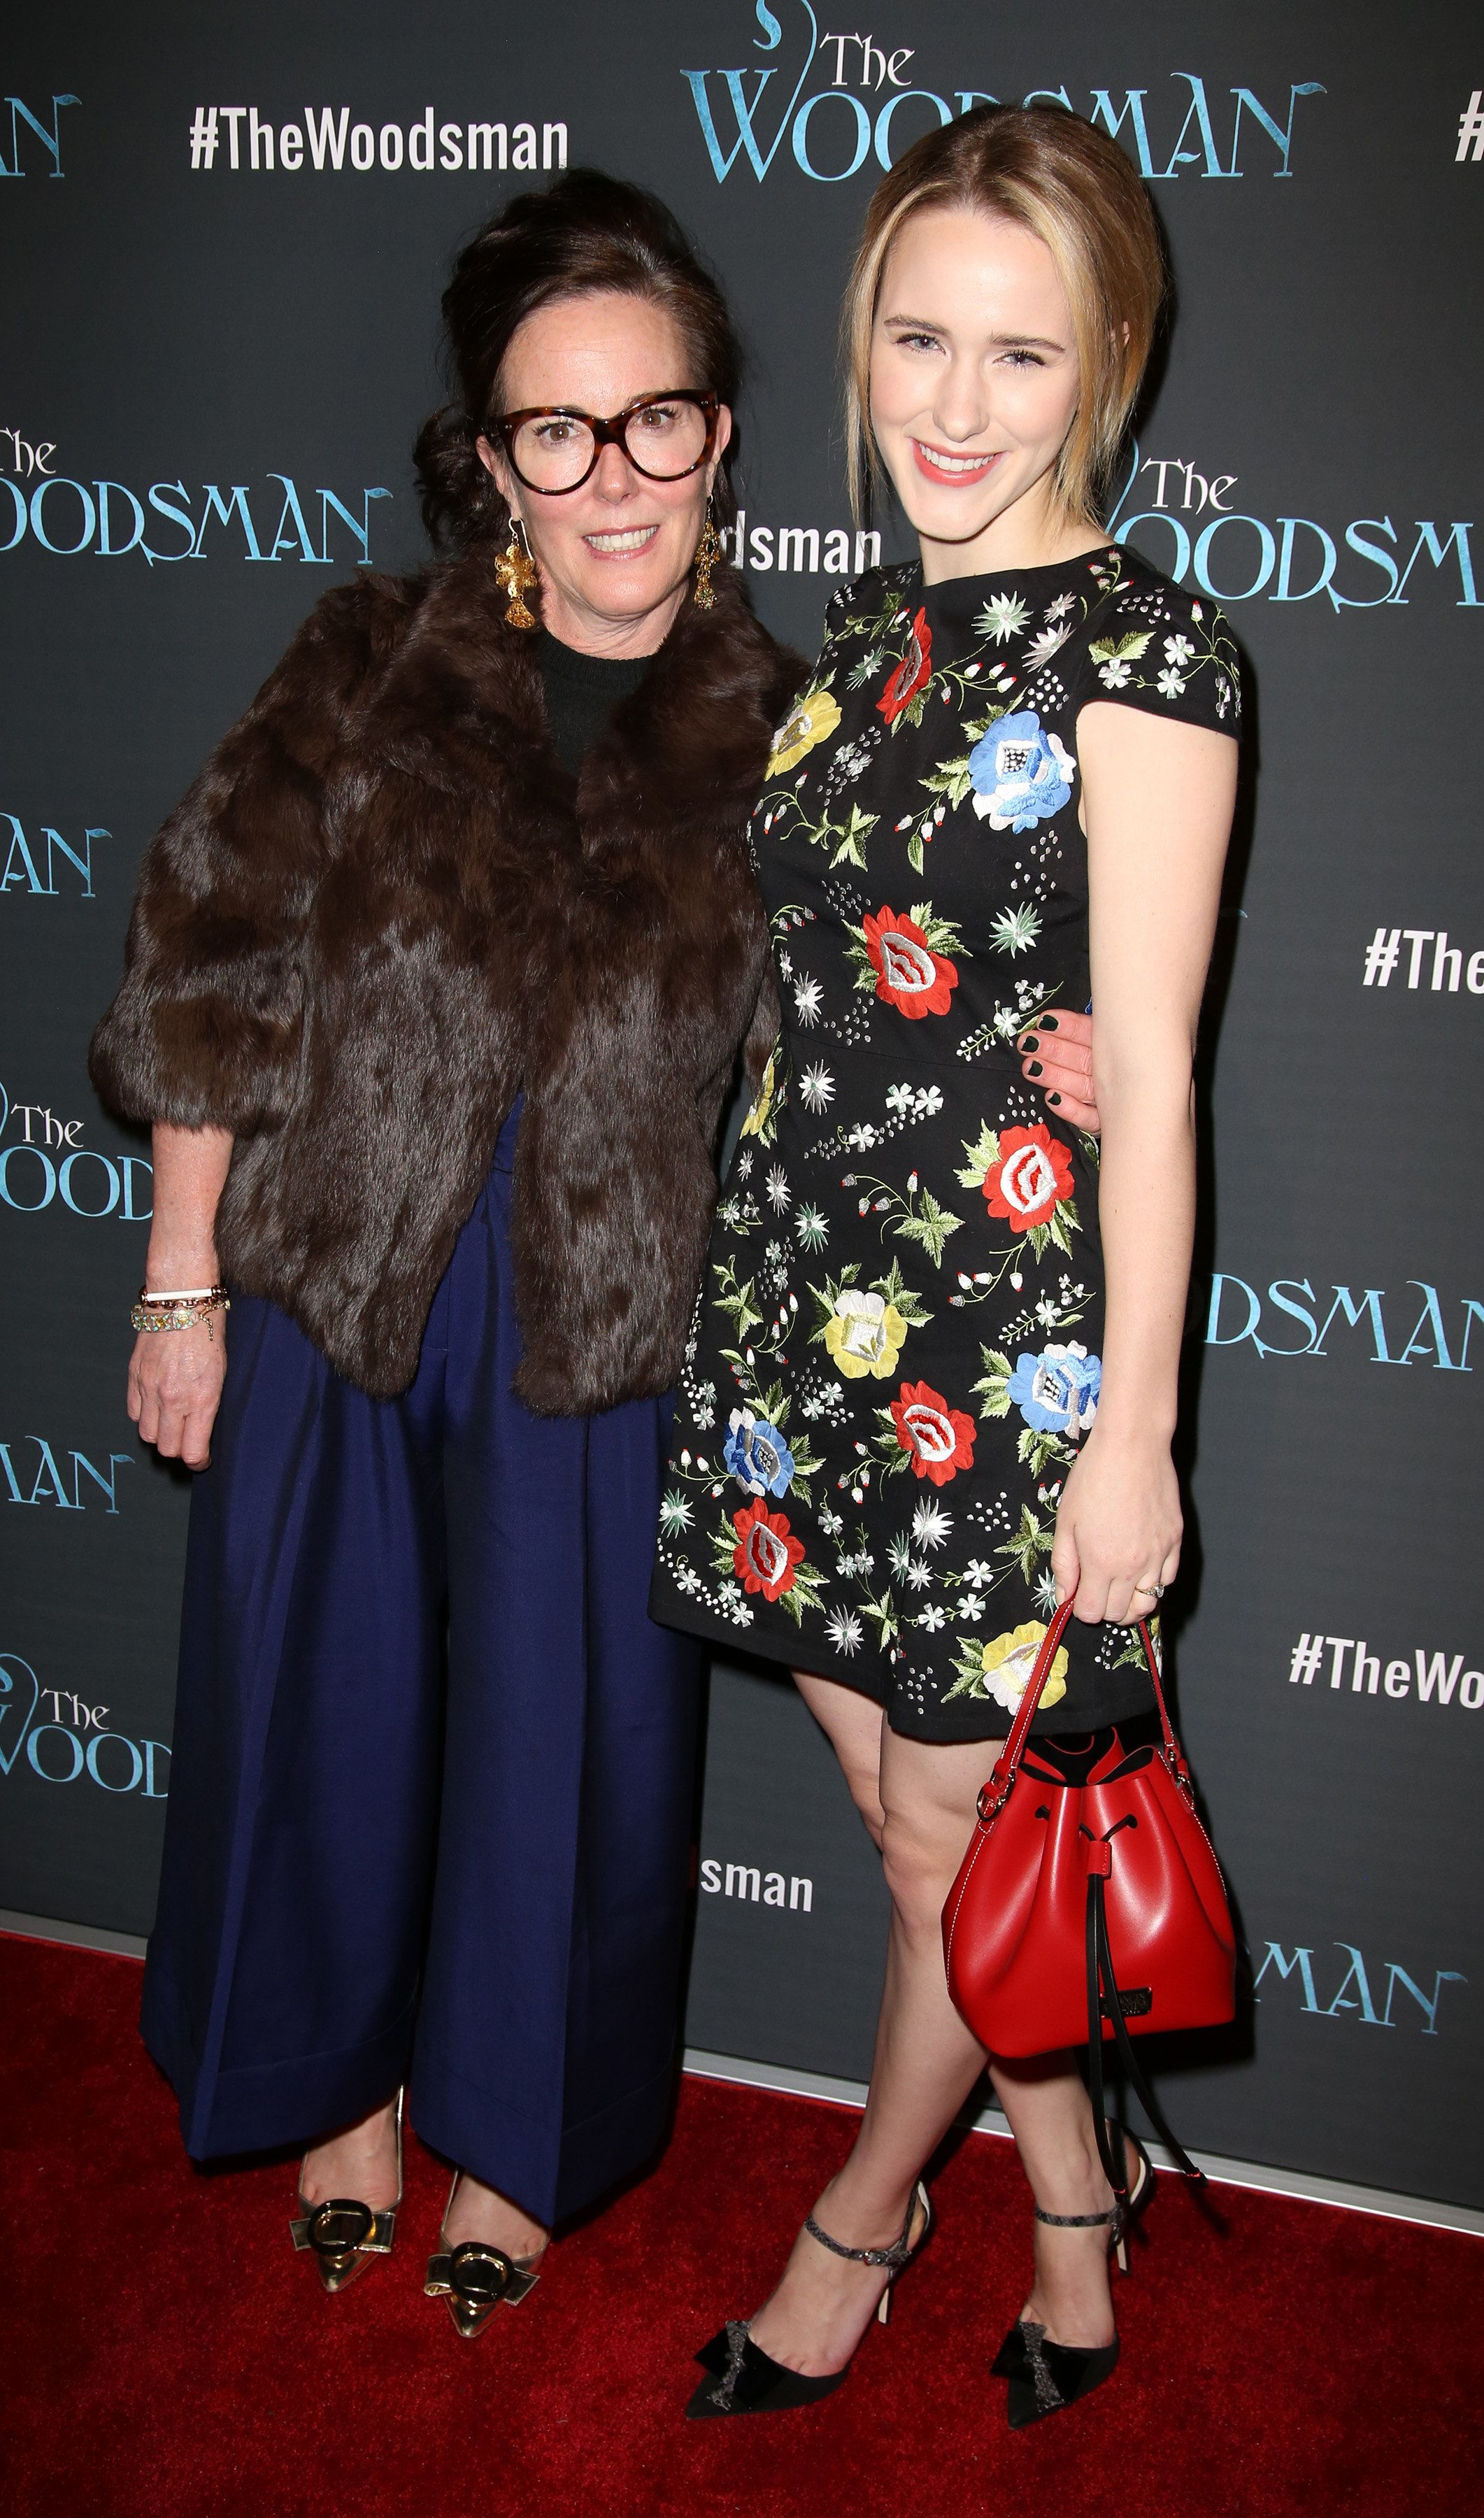 Kate Spade and Rachel Brosnahan pictured together at a movie premiere in 2014.